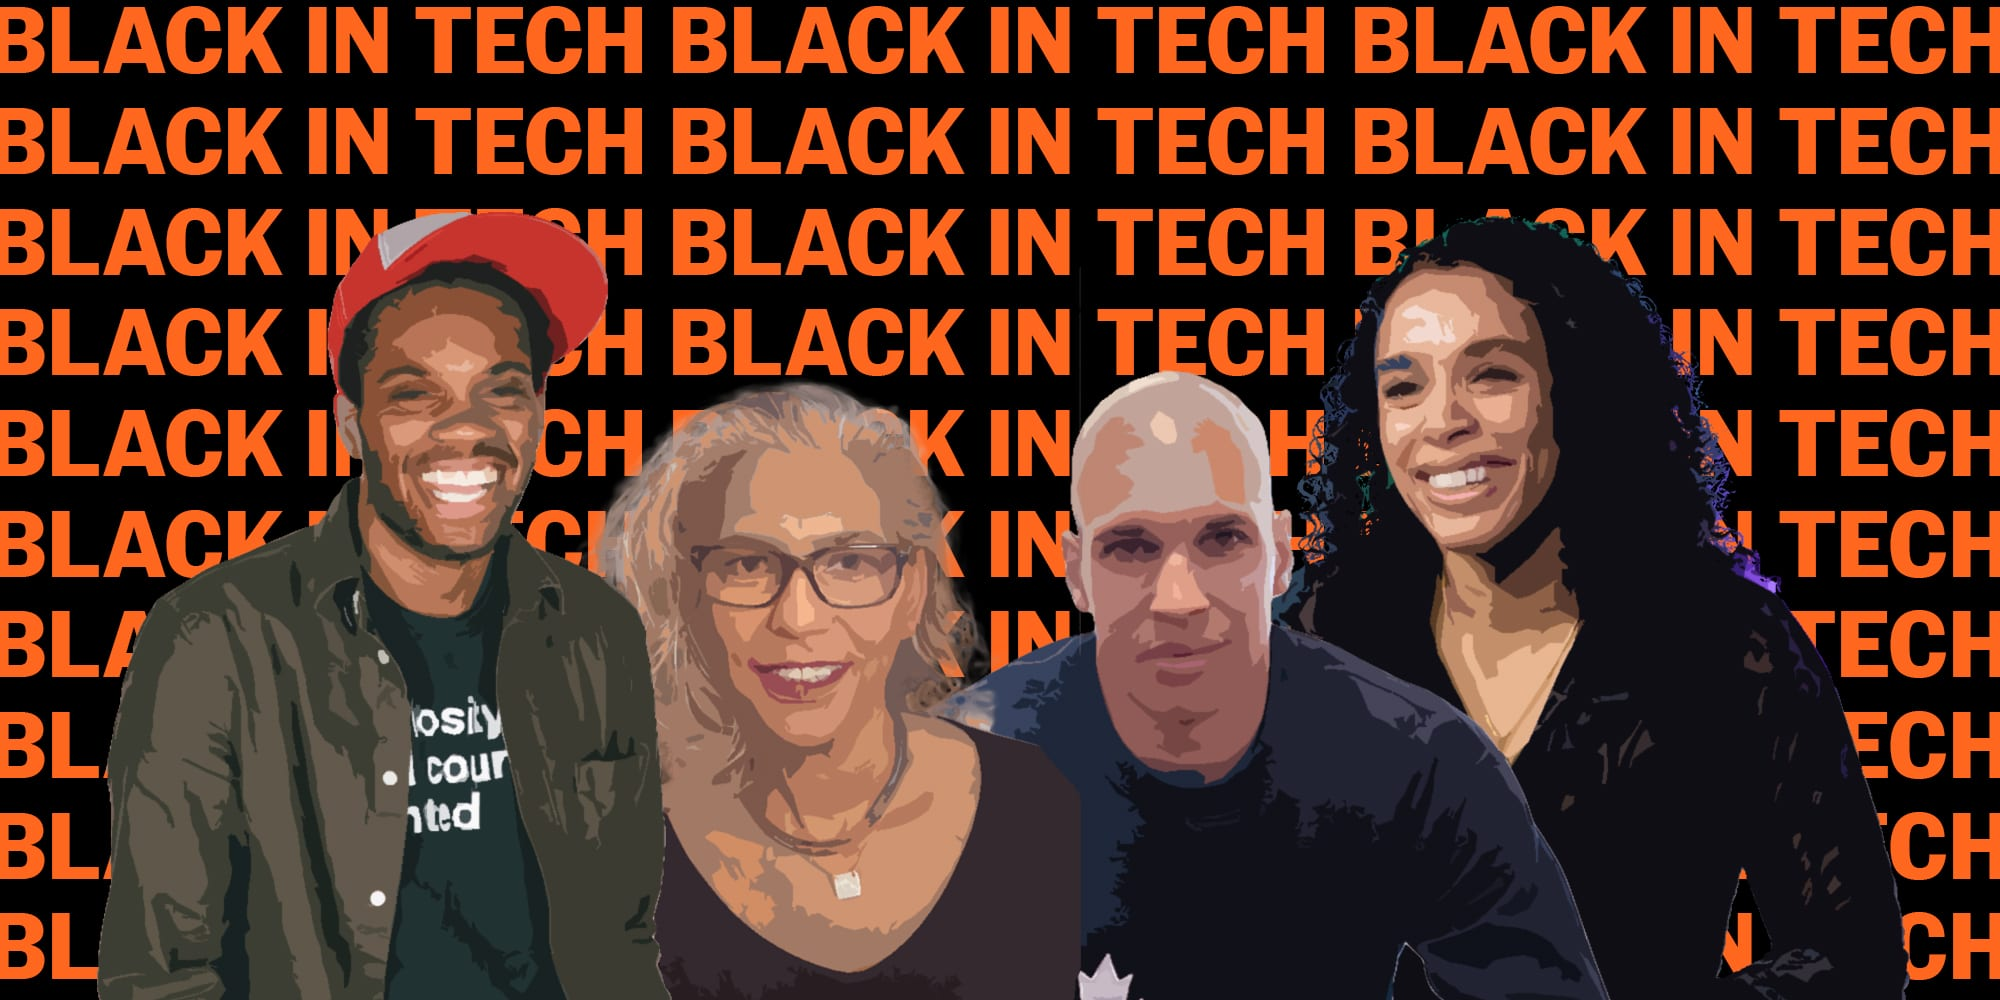 Black in Tech: Startup advice from Black founders who made it